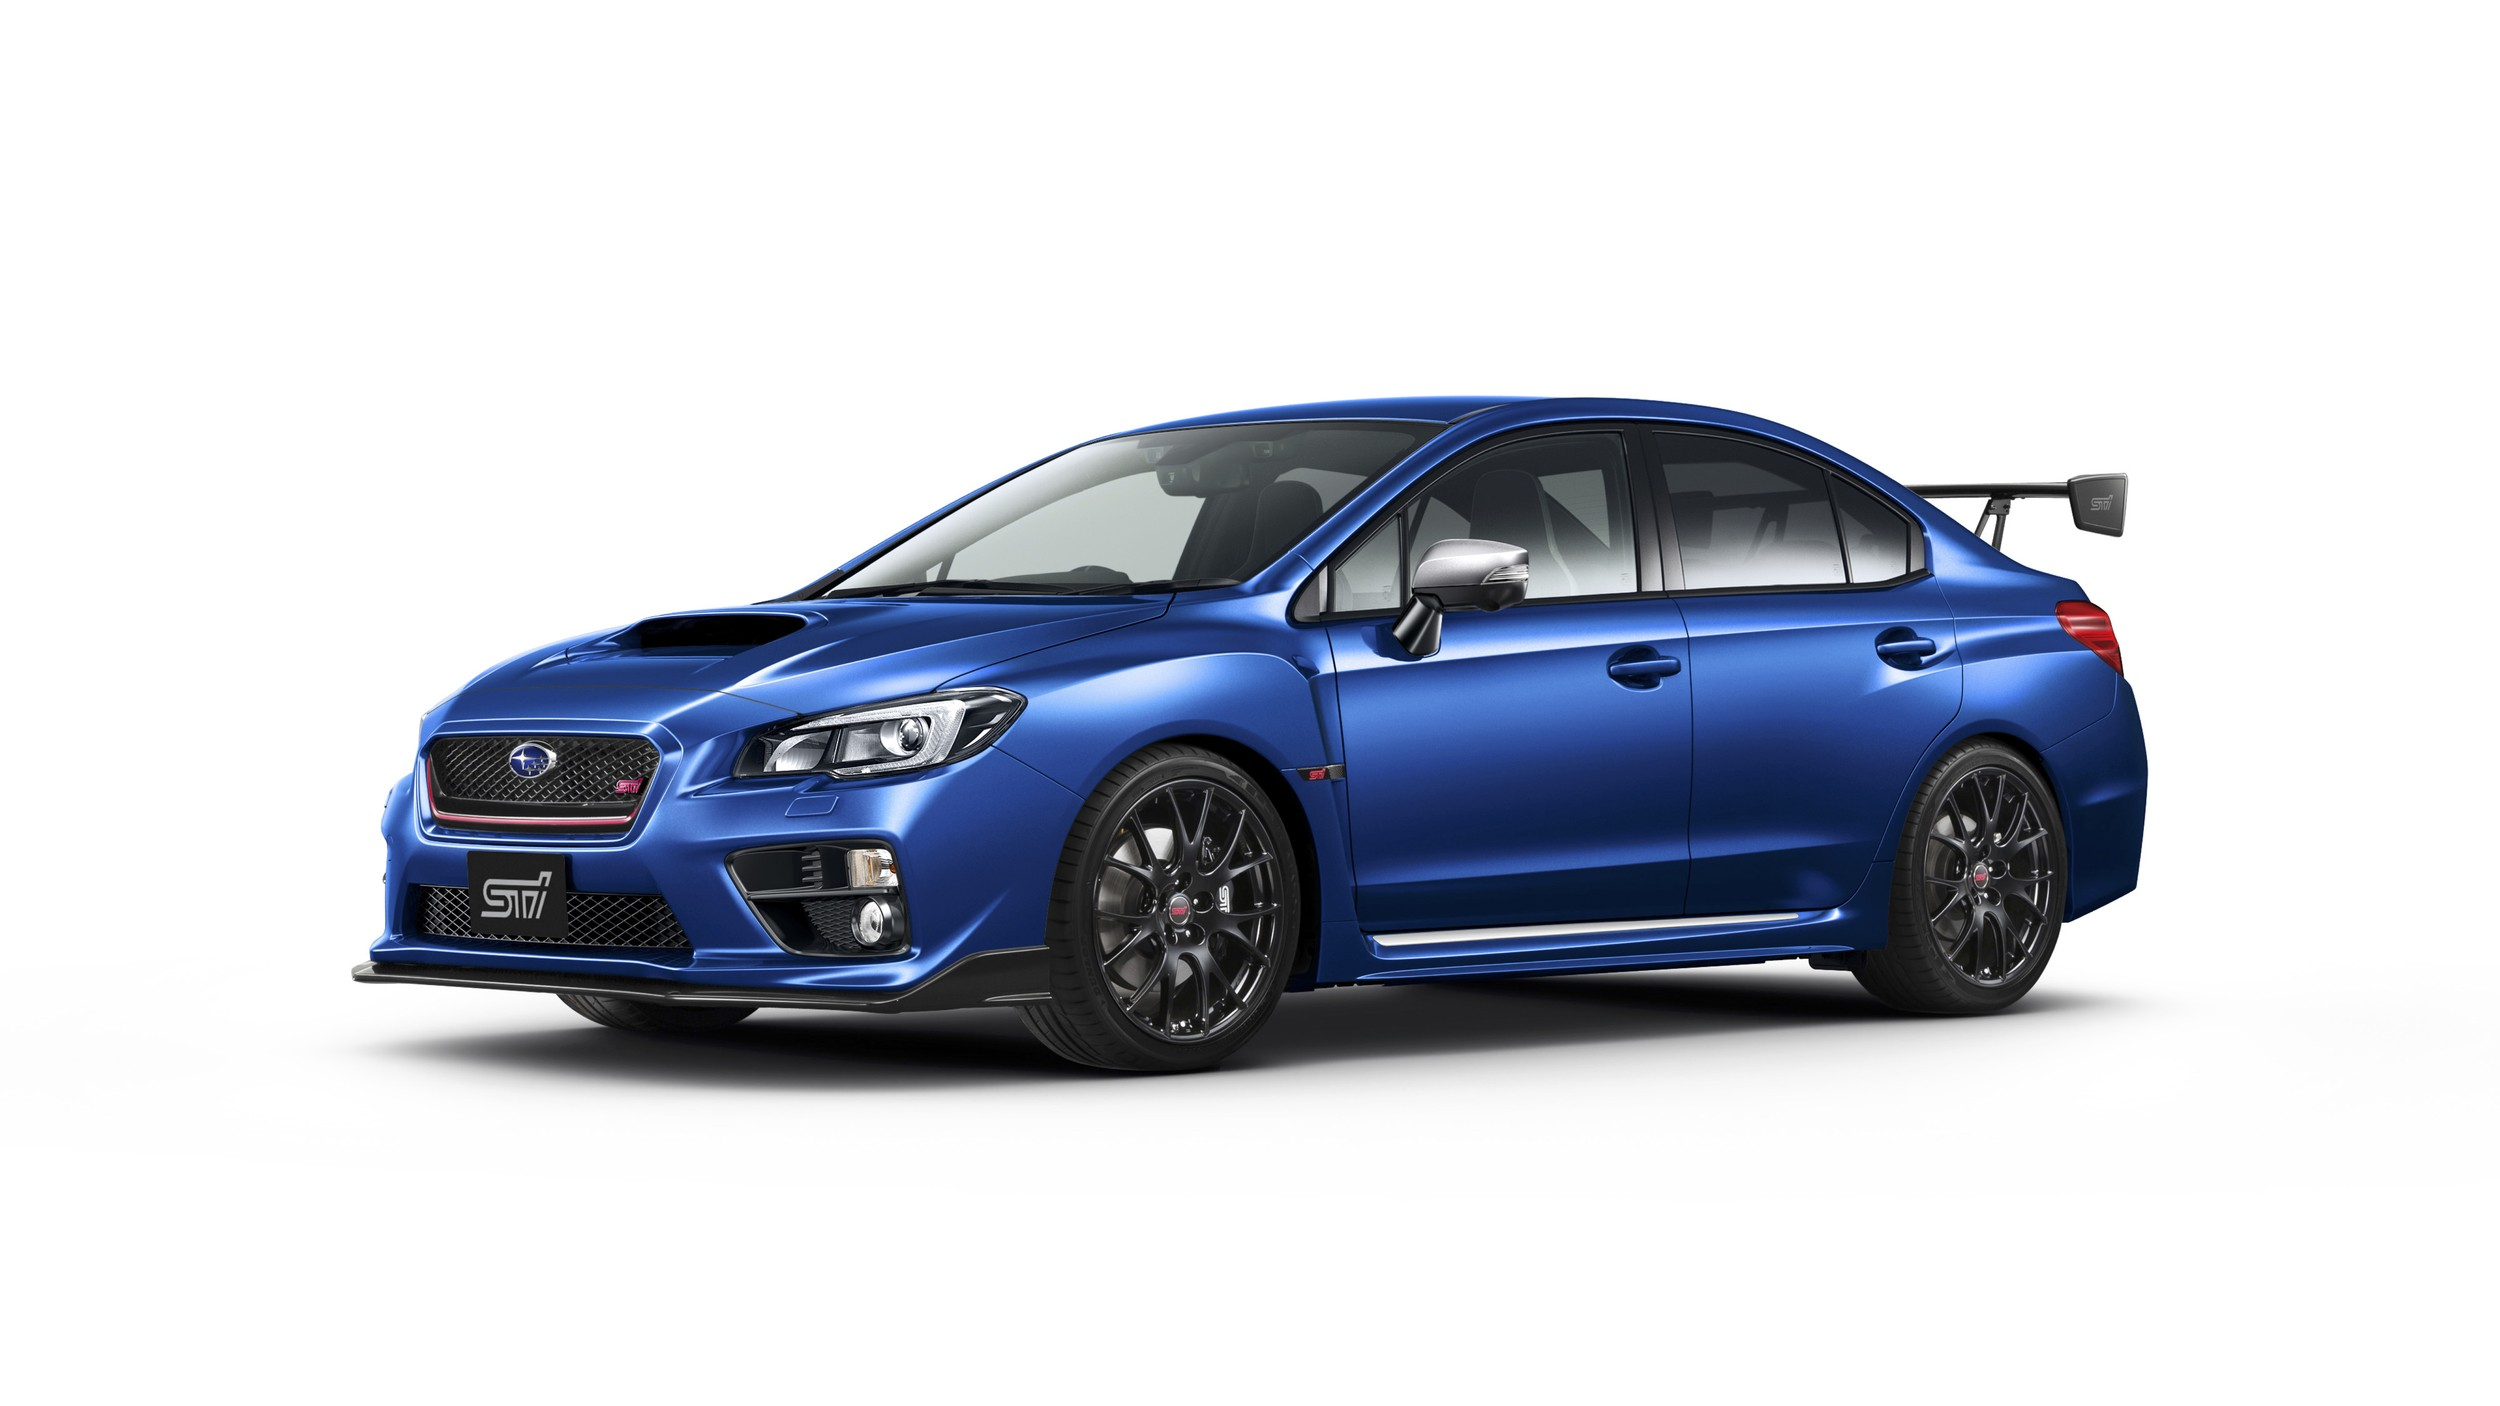 2017 Subaru Wrx S4 Ts Special Edition Launched In Japan